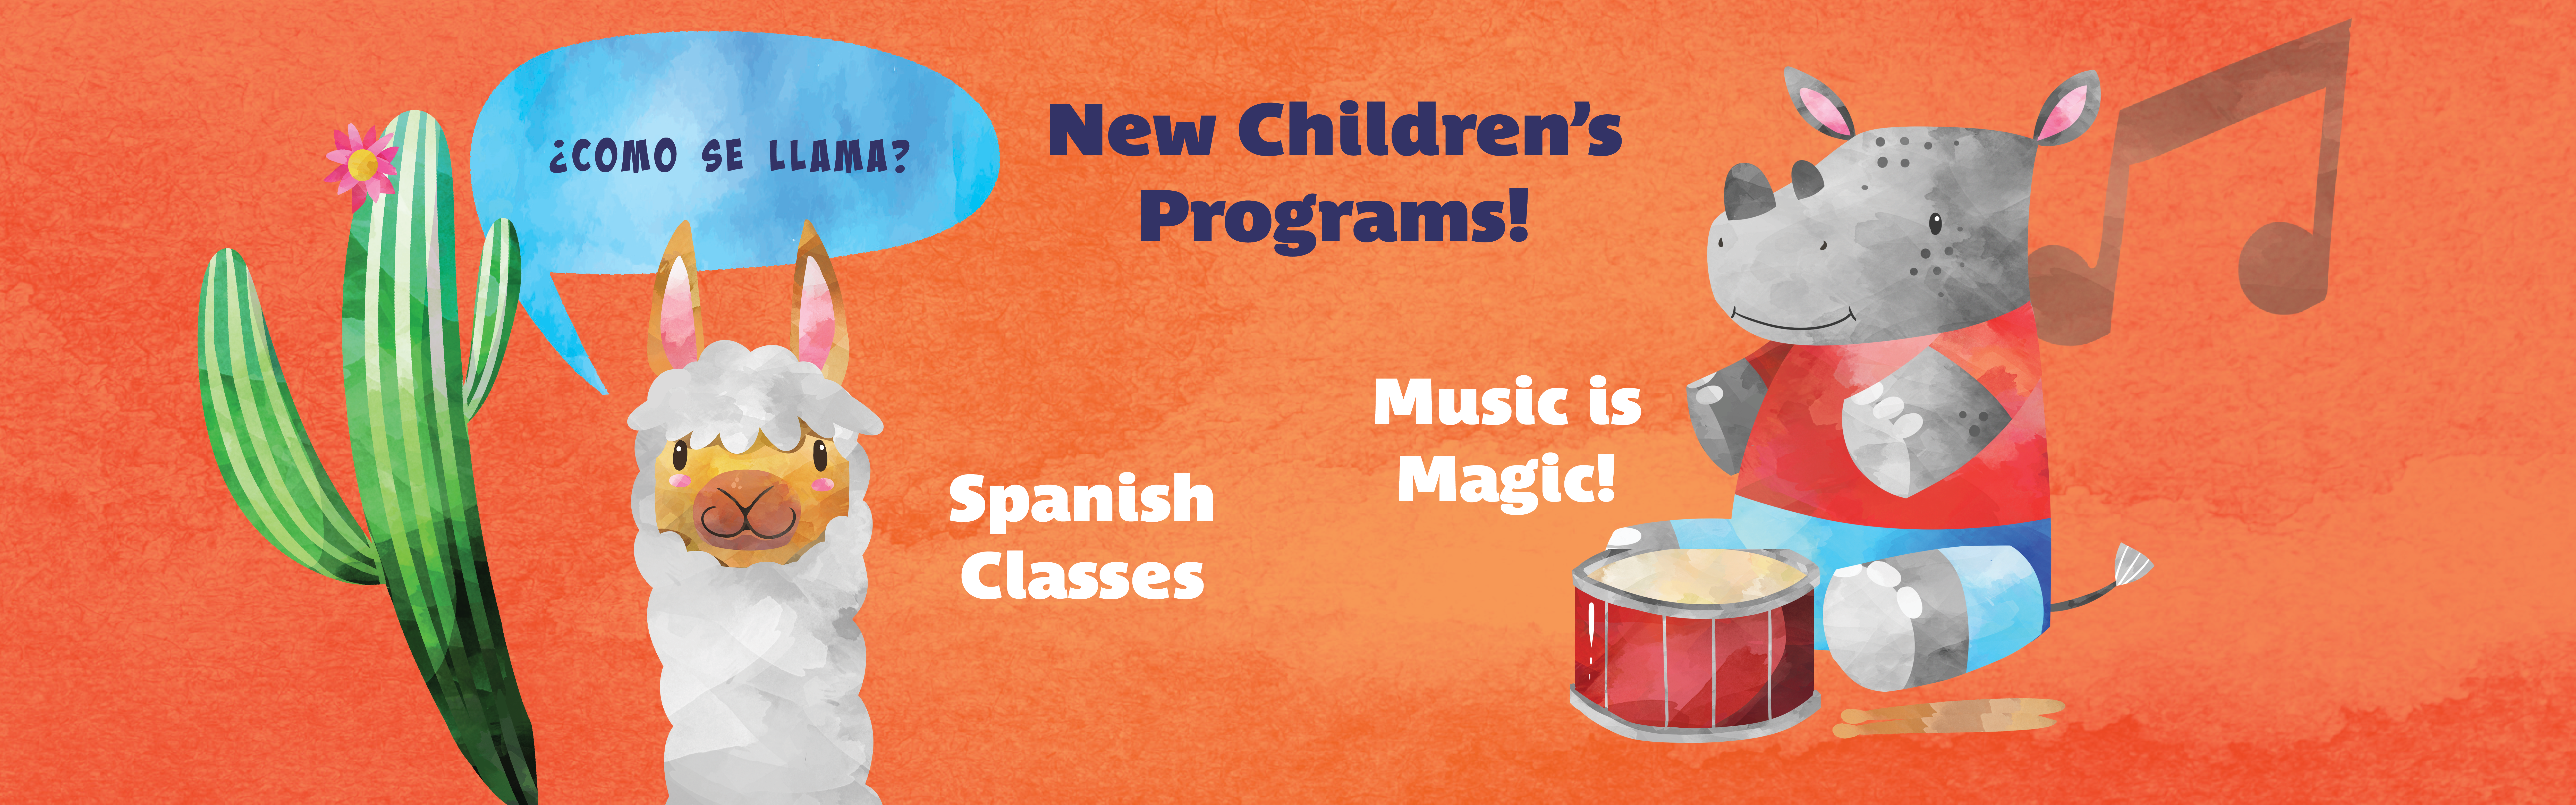 New Children's Programs! Spanish Library and Music is Magic